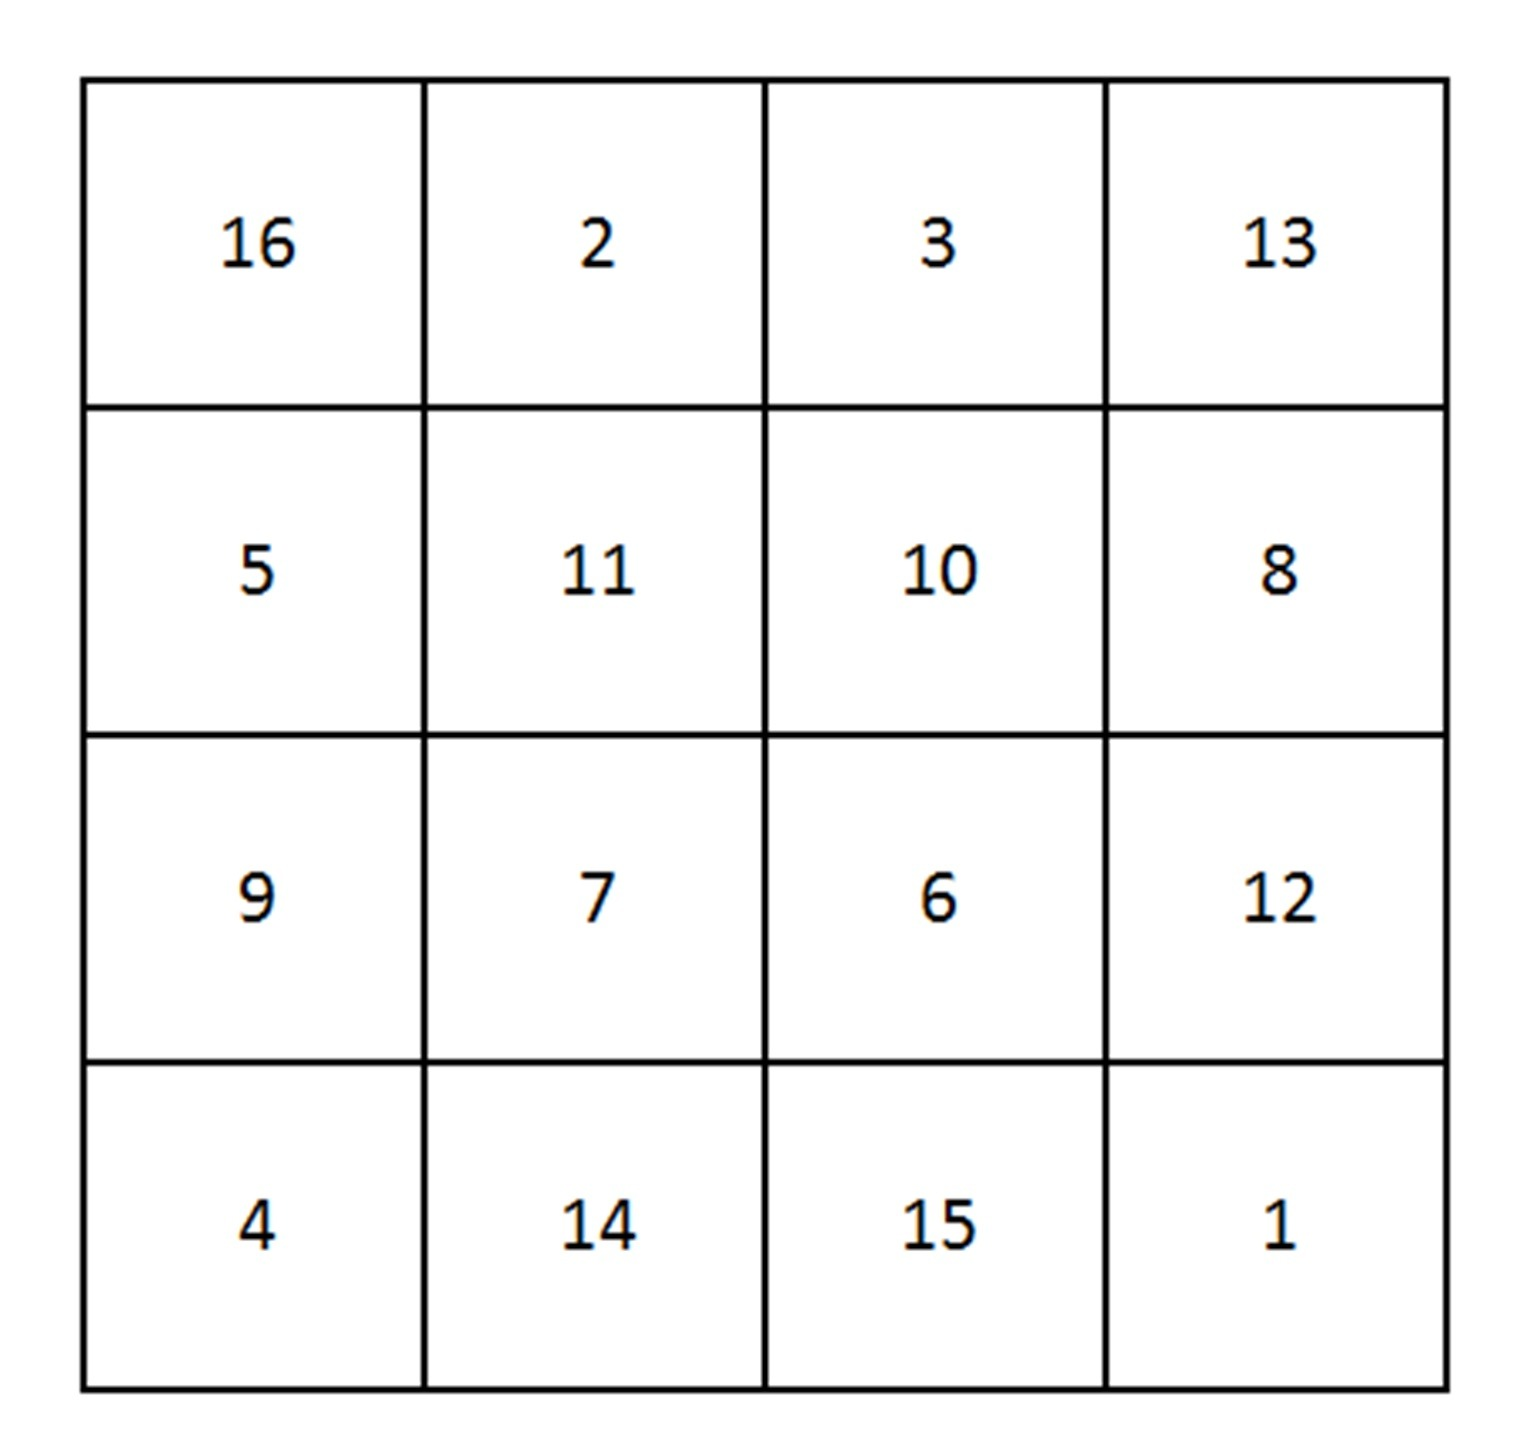 Constructing Magic Square 4